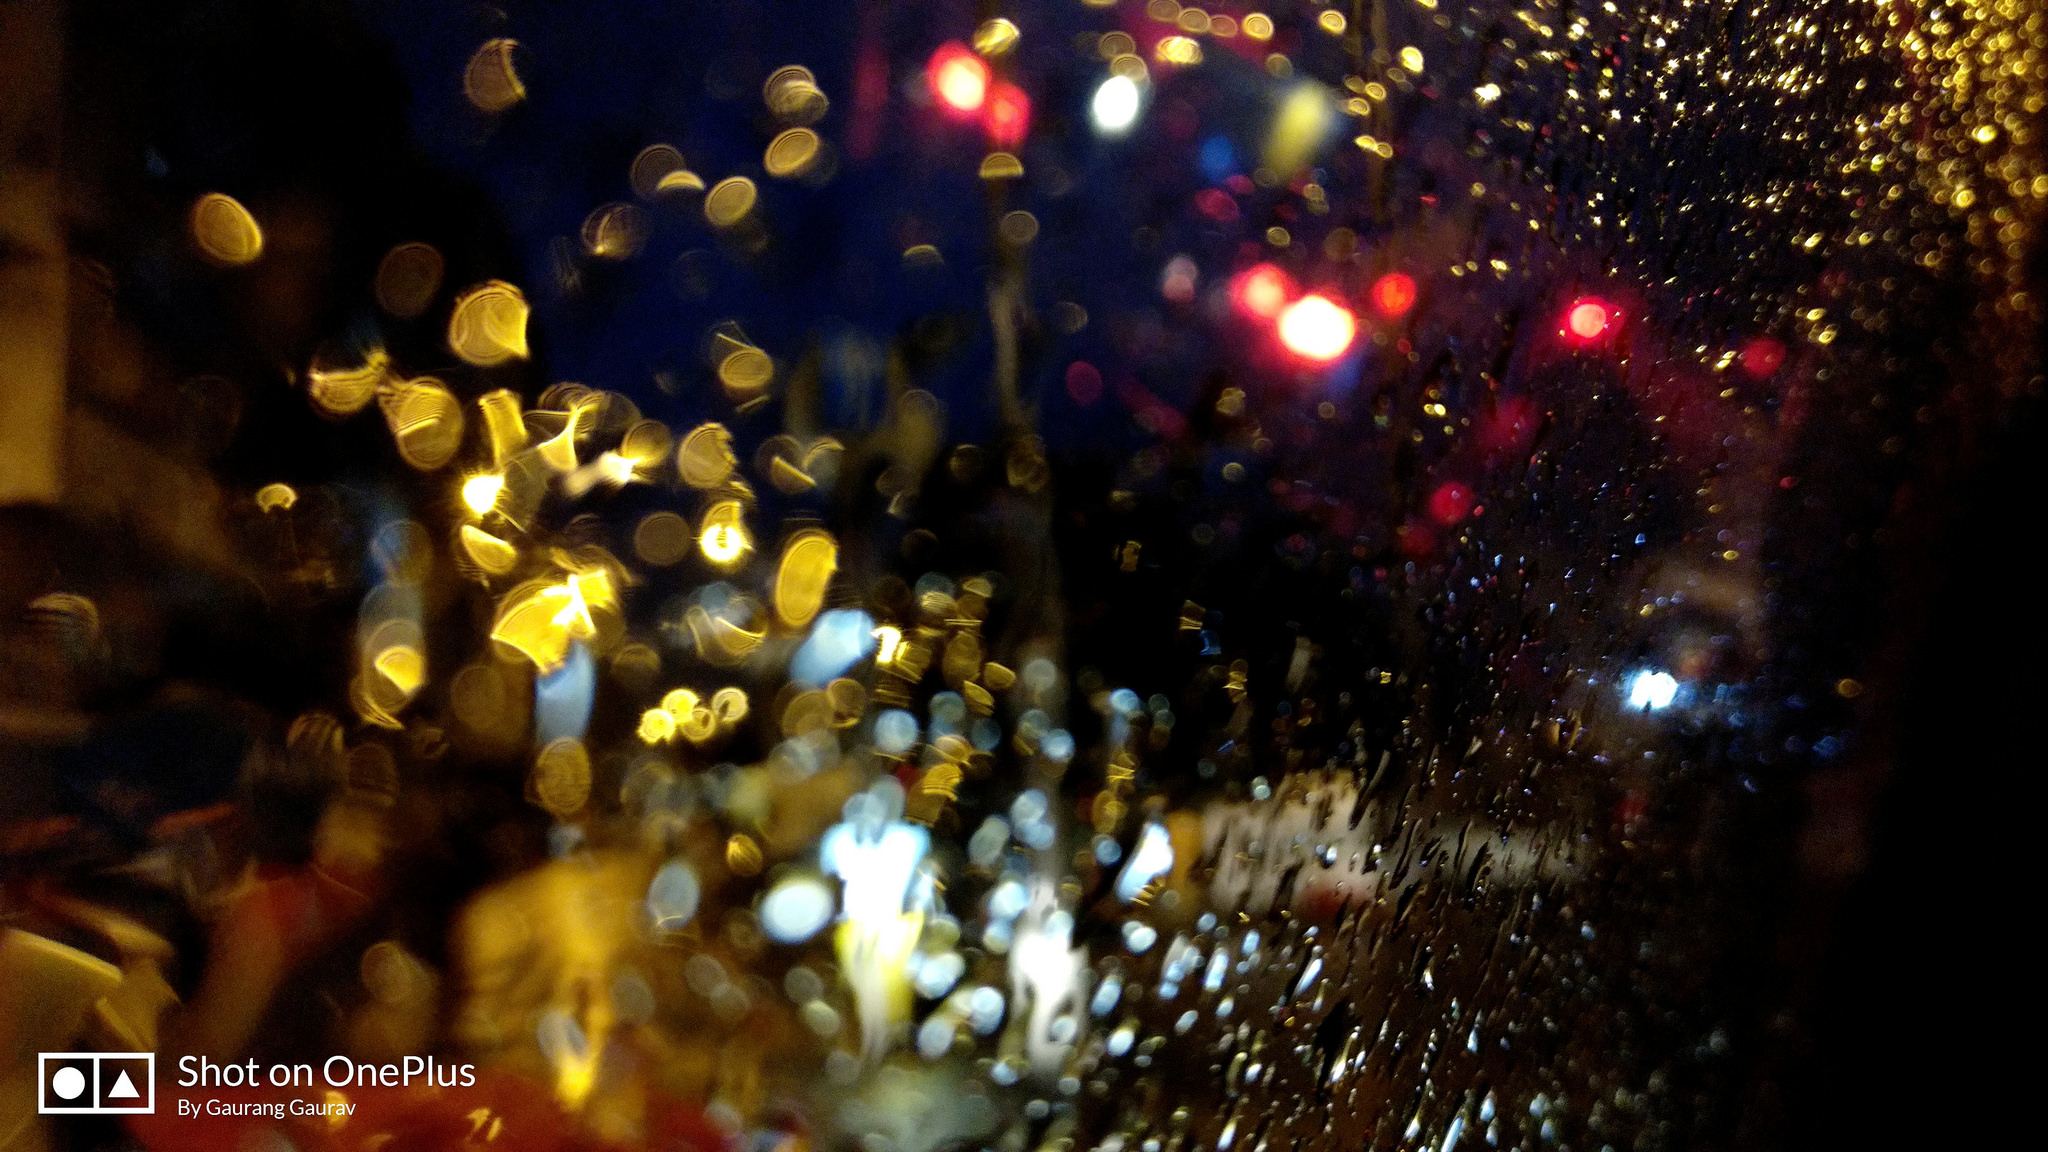 Rain on my window